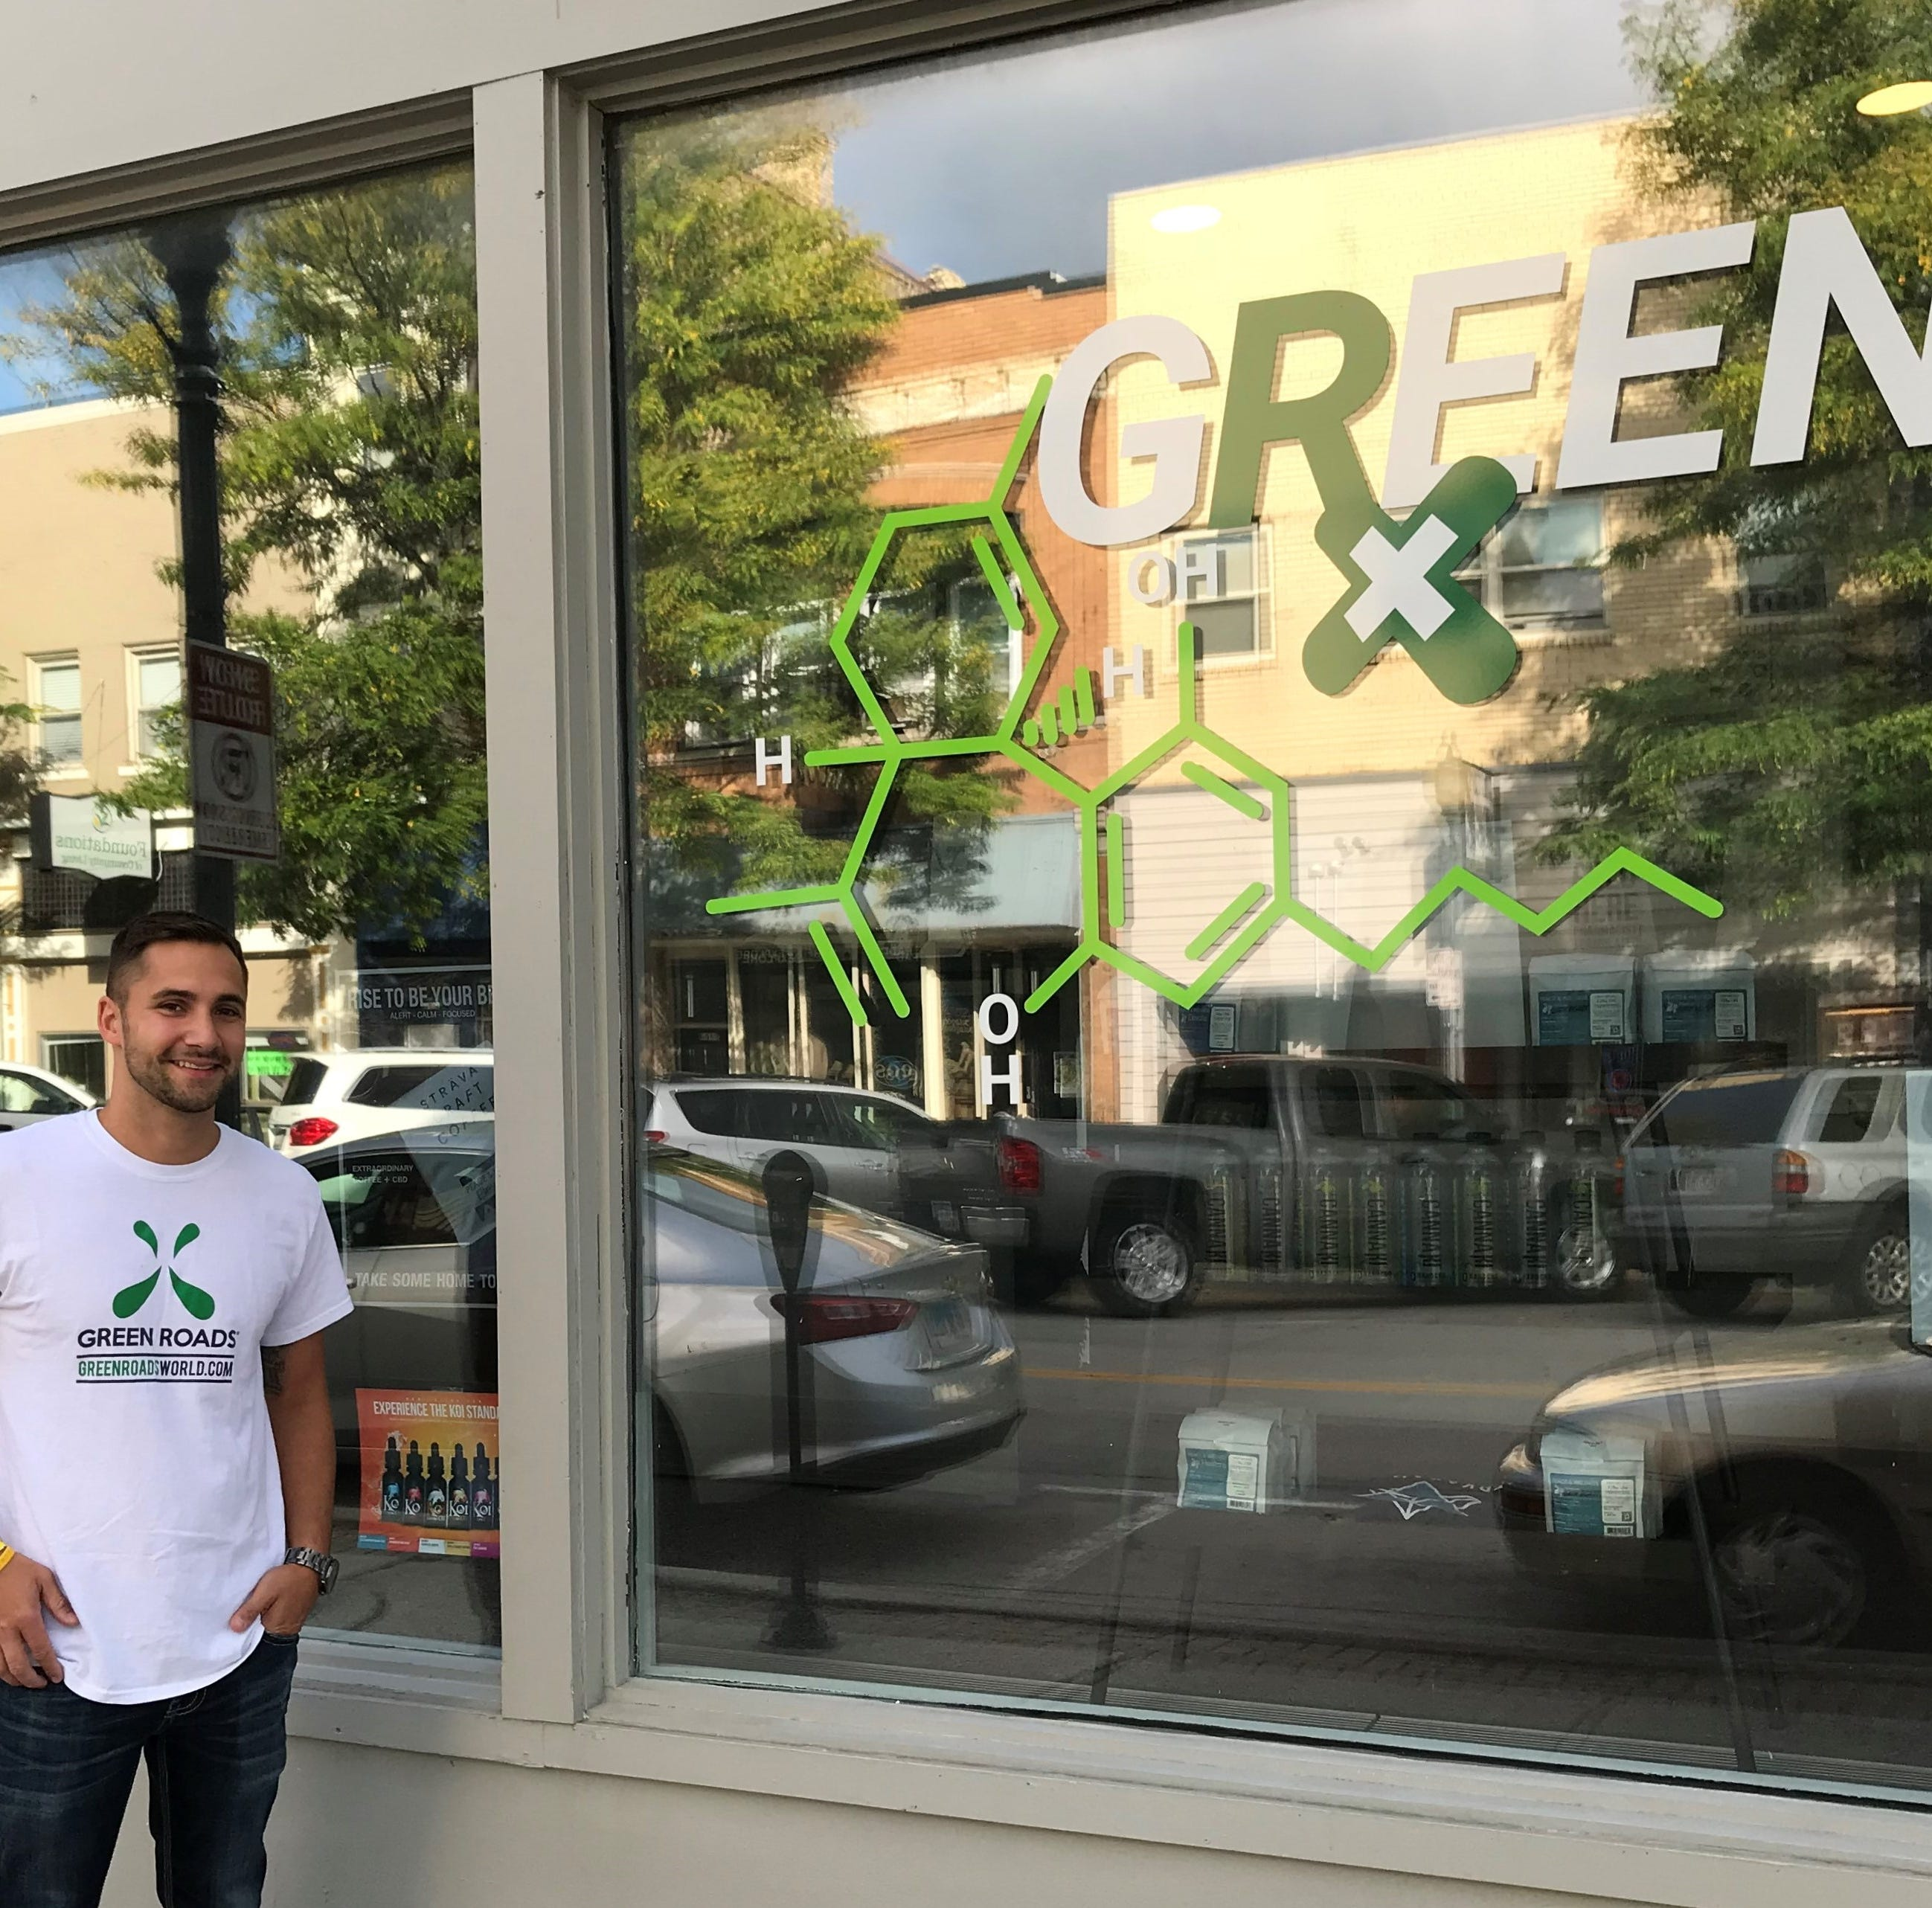 Sheboygan's first cannabidiol shop, Green Rx offers oils, bath bombs, coffee, dog treats